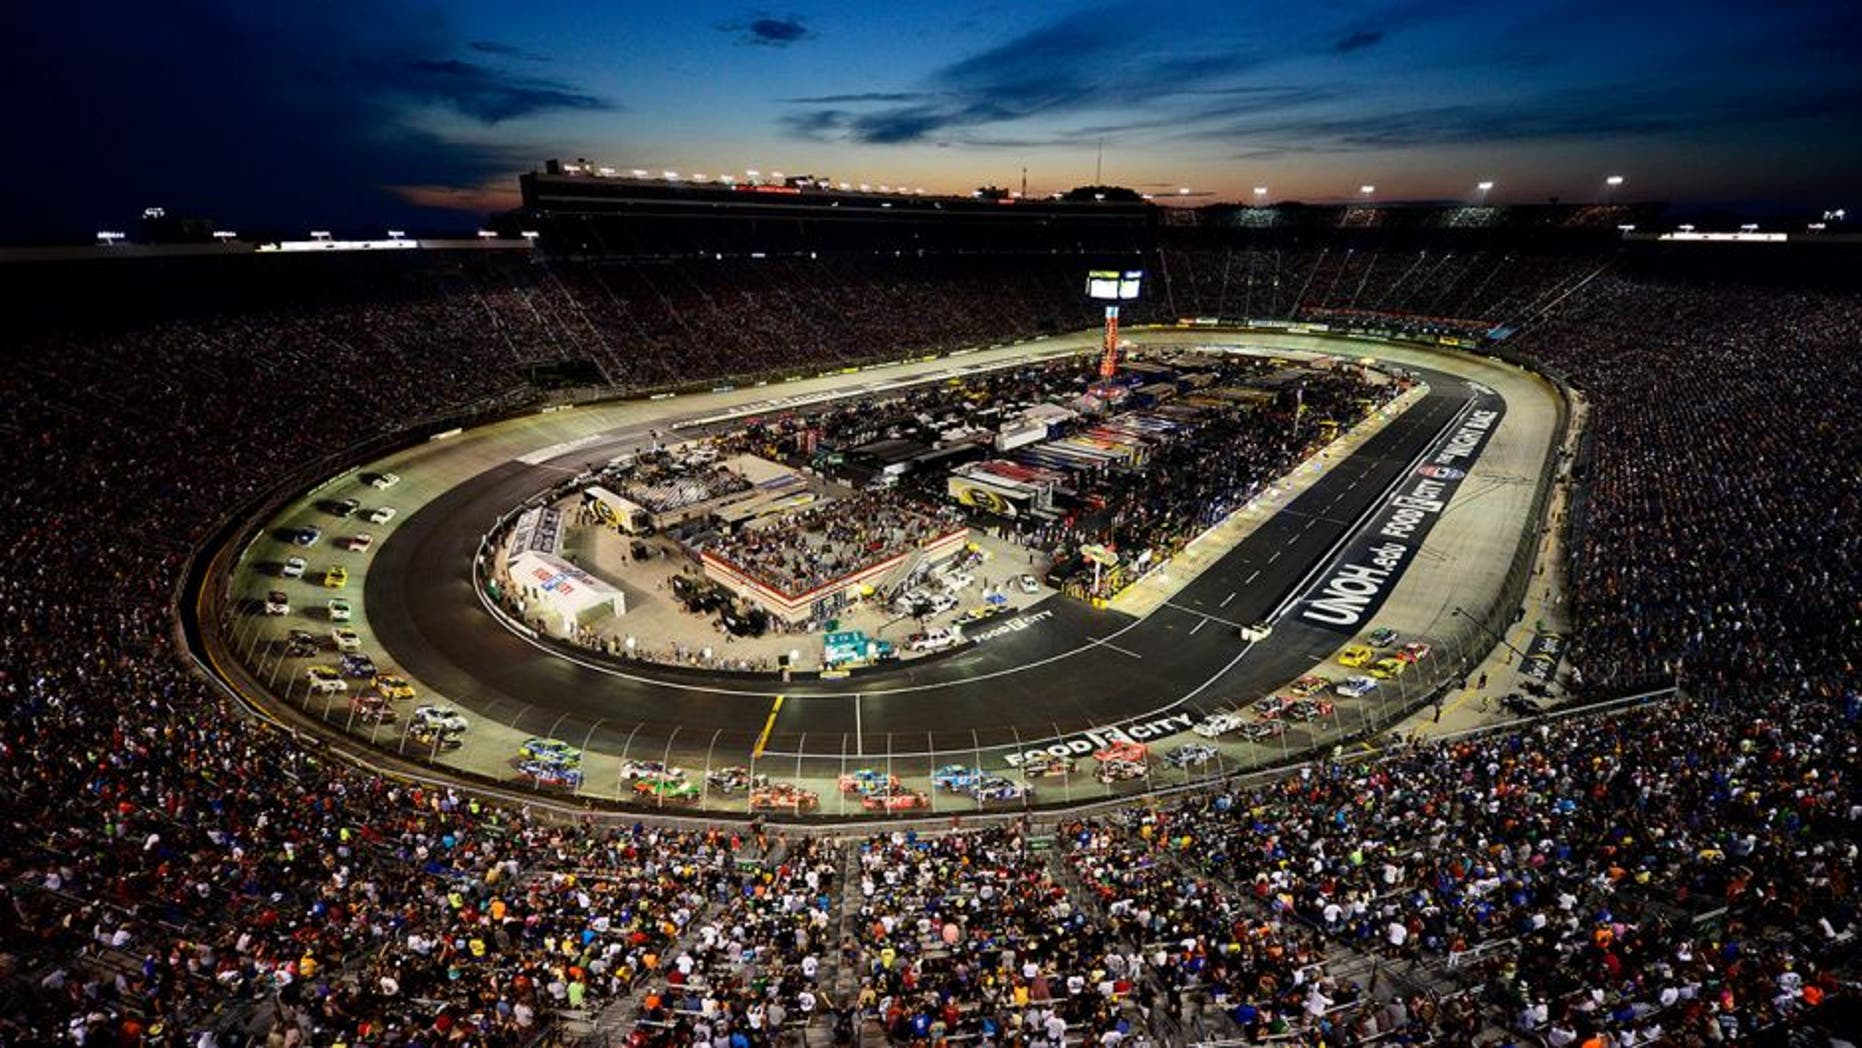 BRISTOL, TN - AUGUST 22: A general view of the speedway as cars race